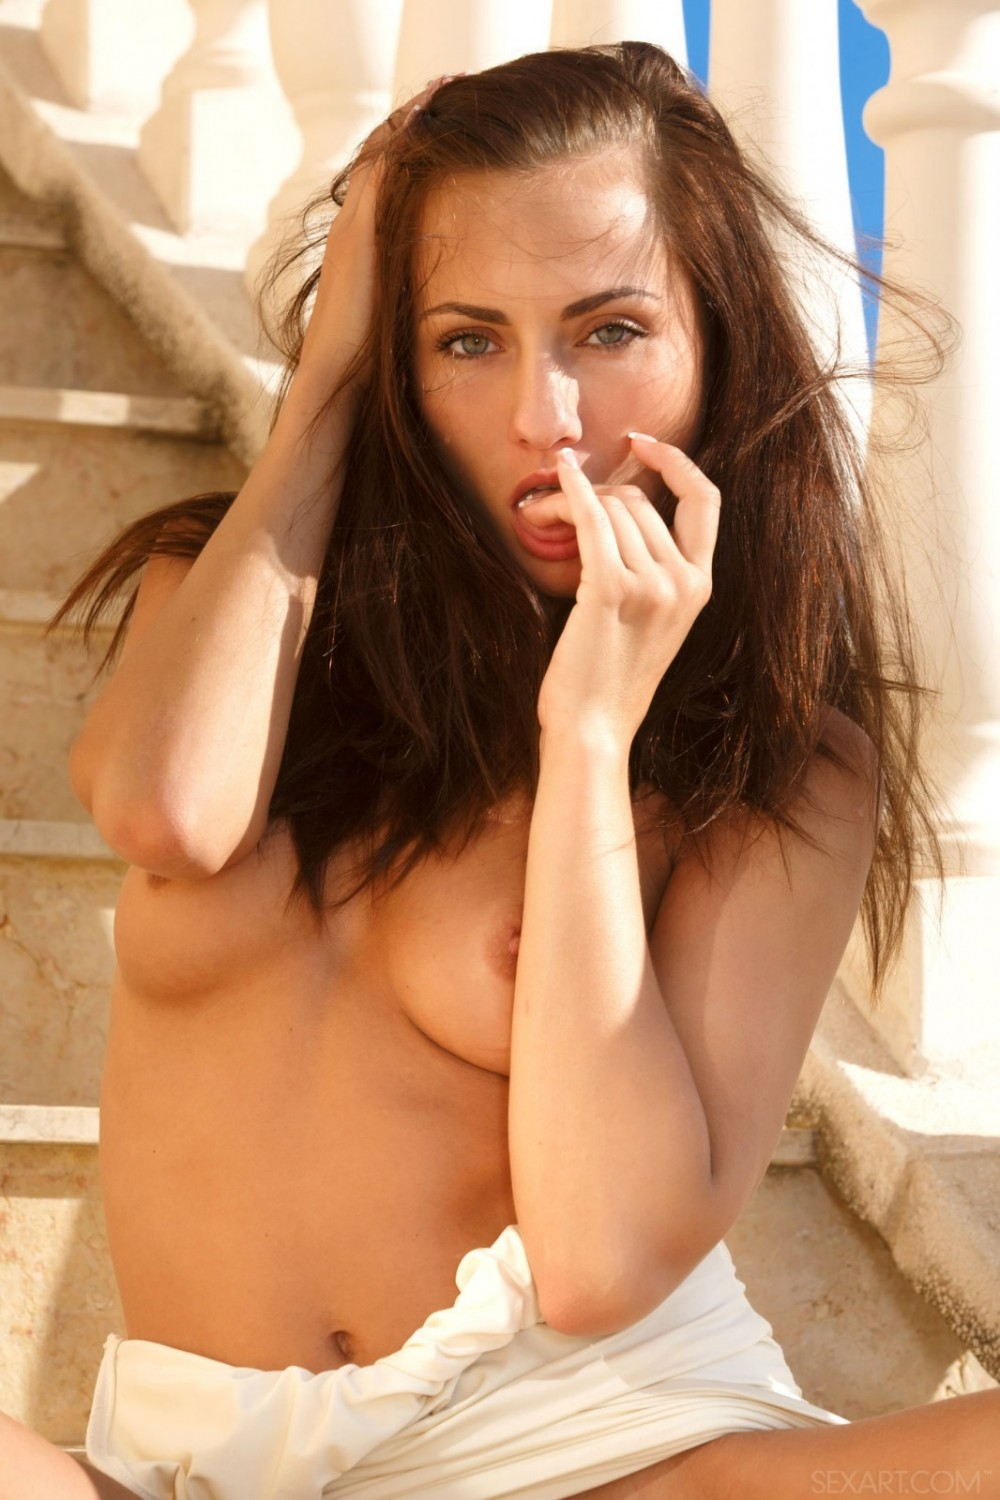 Hot girl walks down the stairs naked